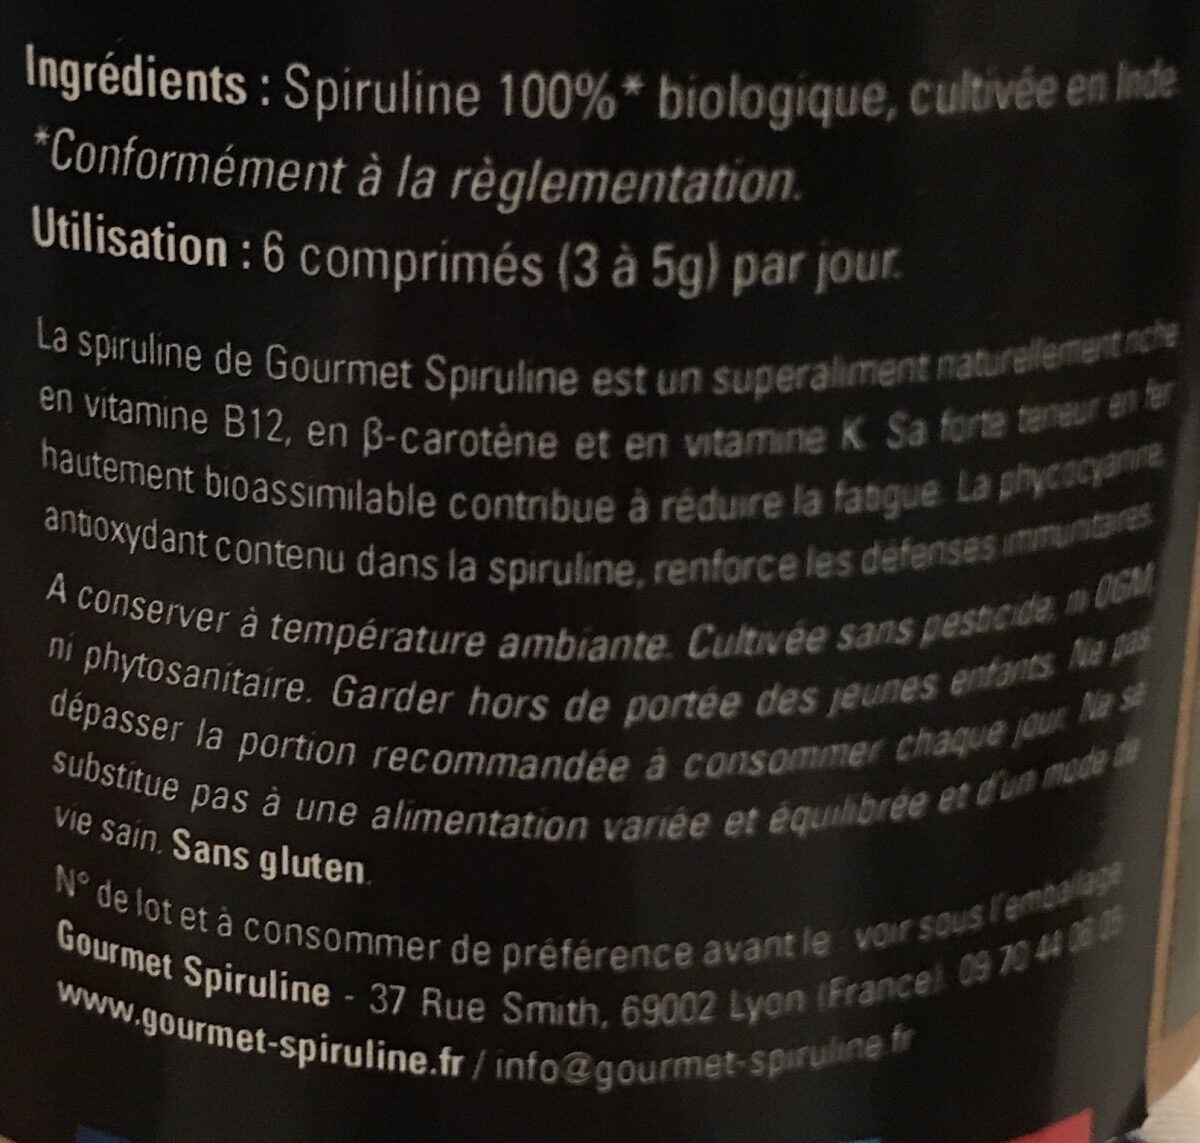 Spiruline en comprimés - Ingredients - fr